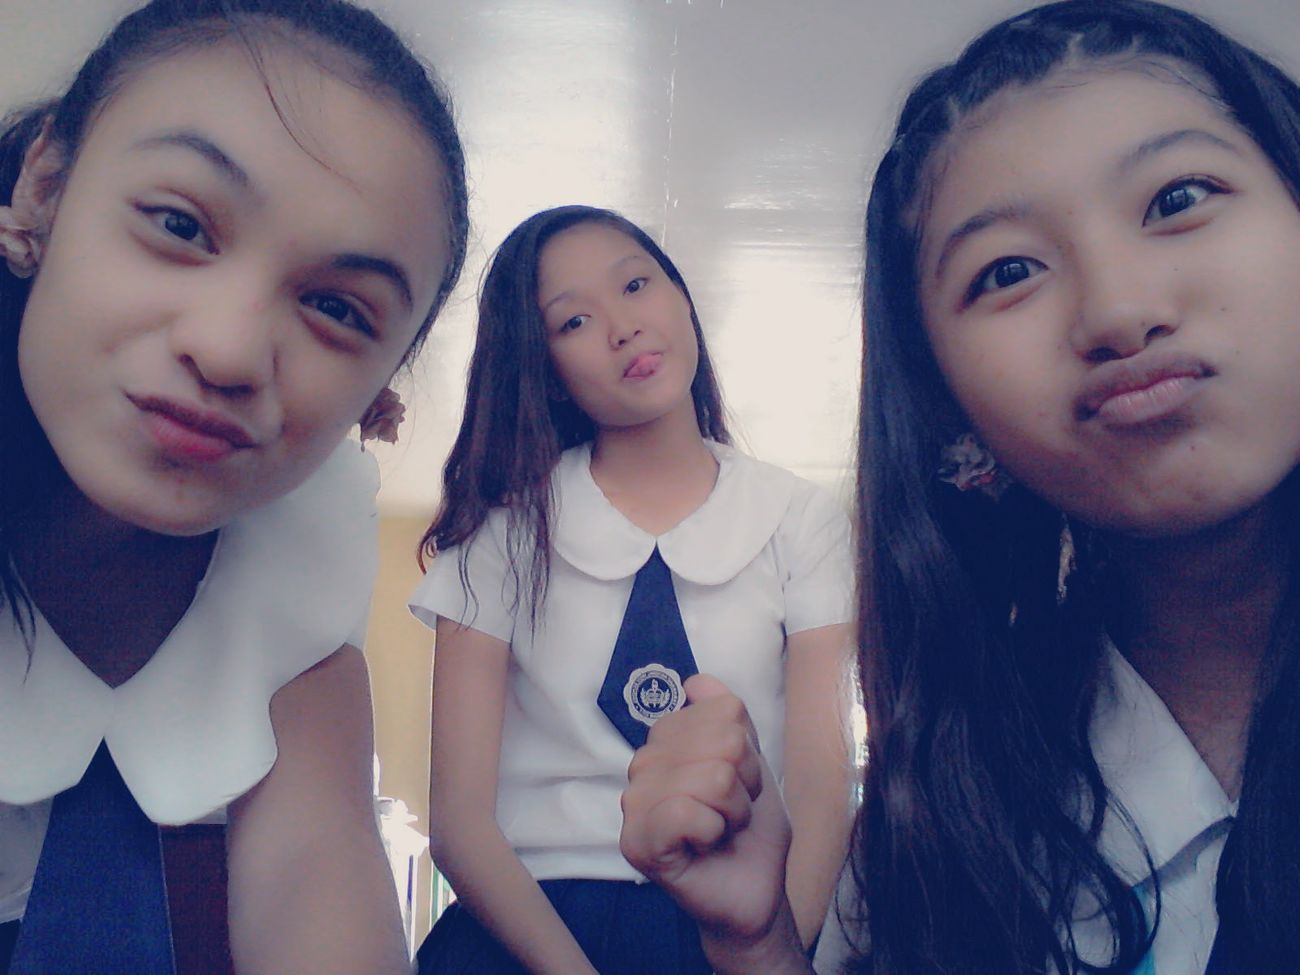 With my pretty Girl Friends School Girl (: Beautiful ♥ My Girls ♥ Happy And Contented